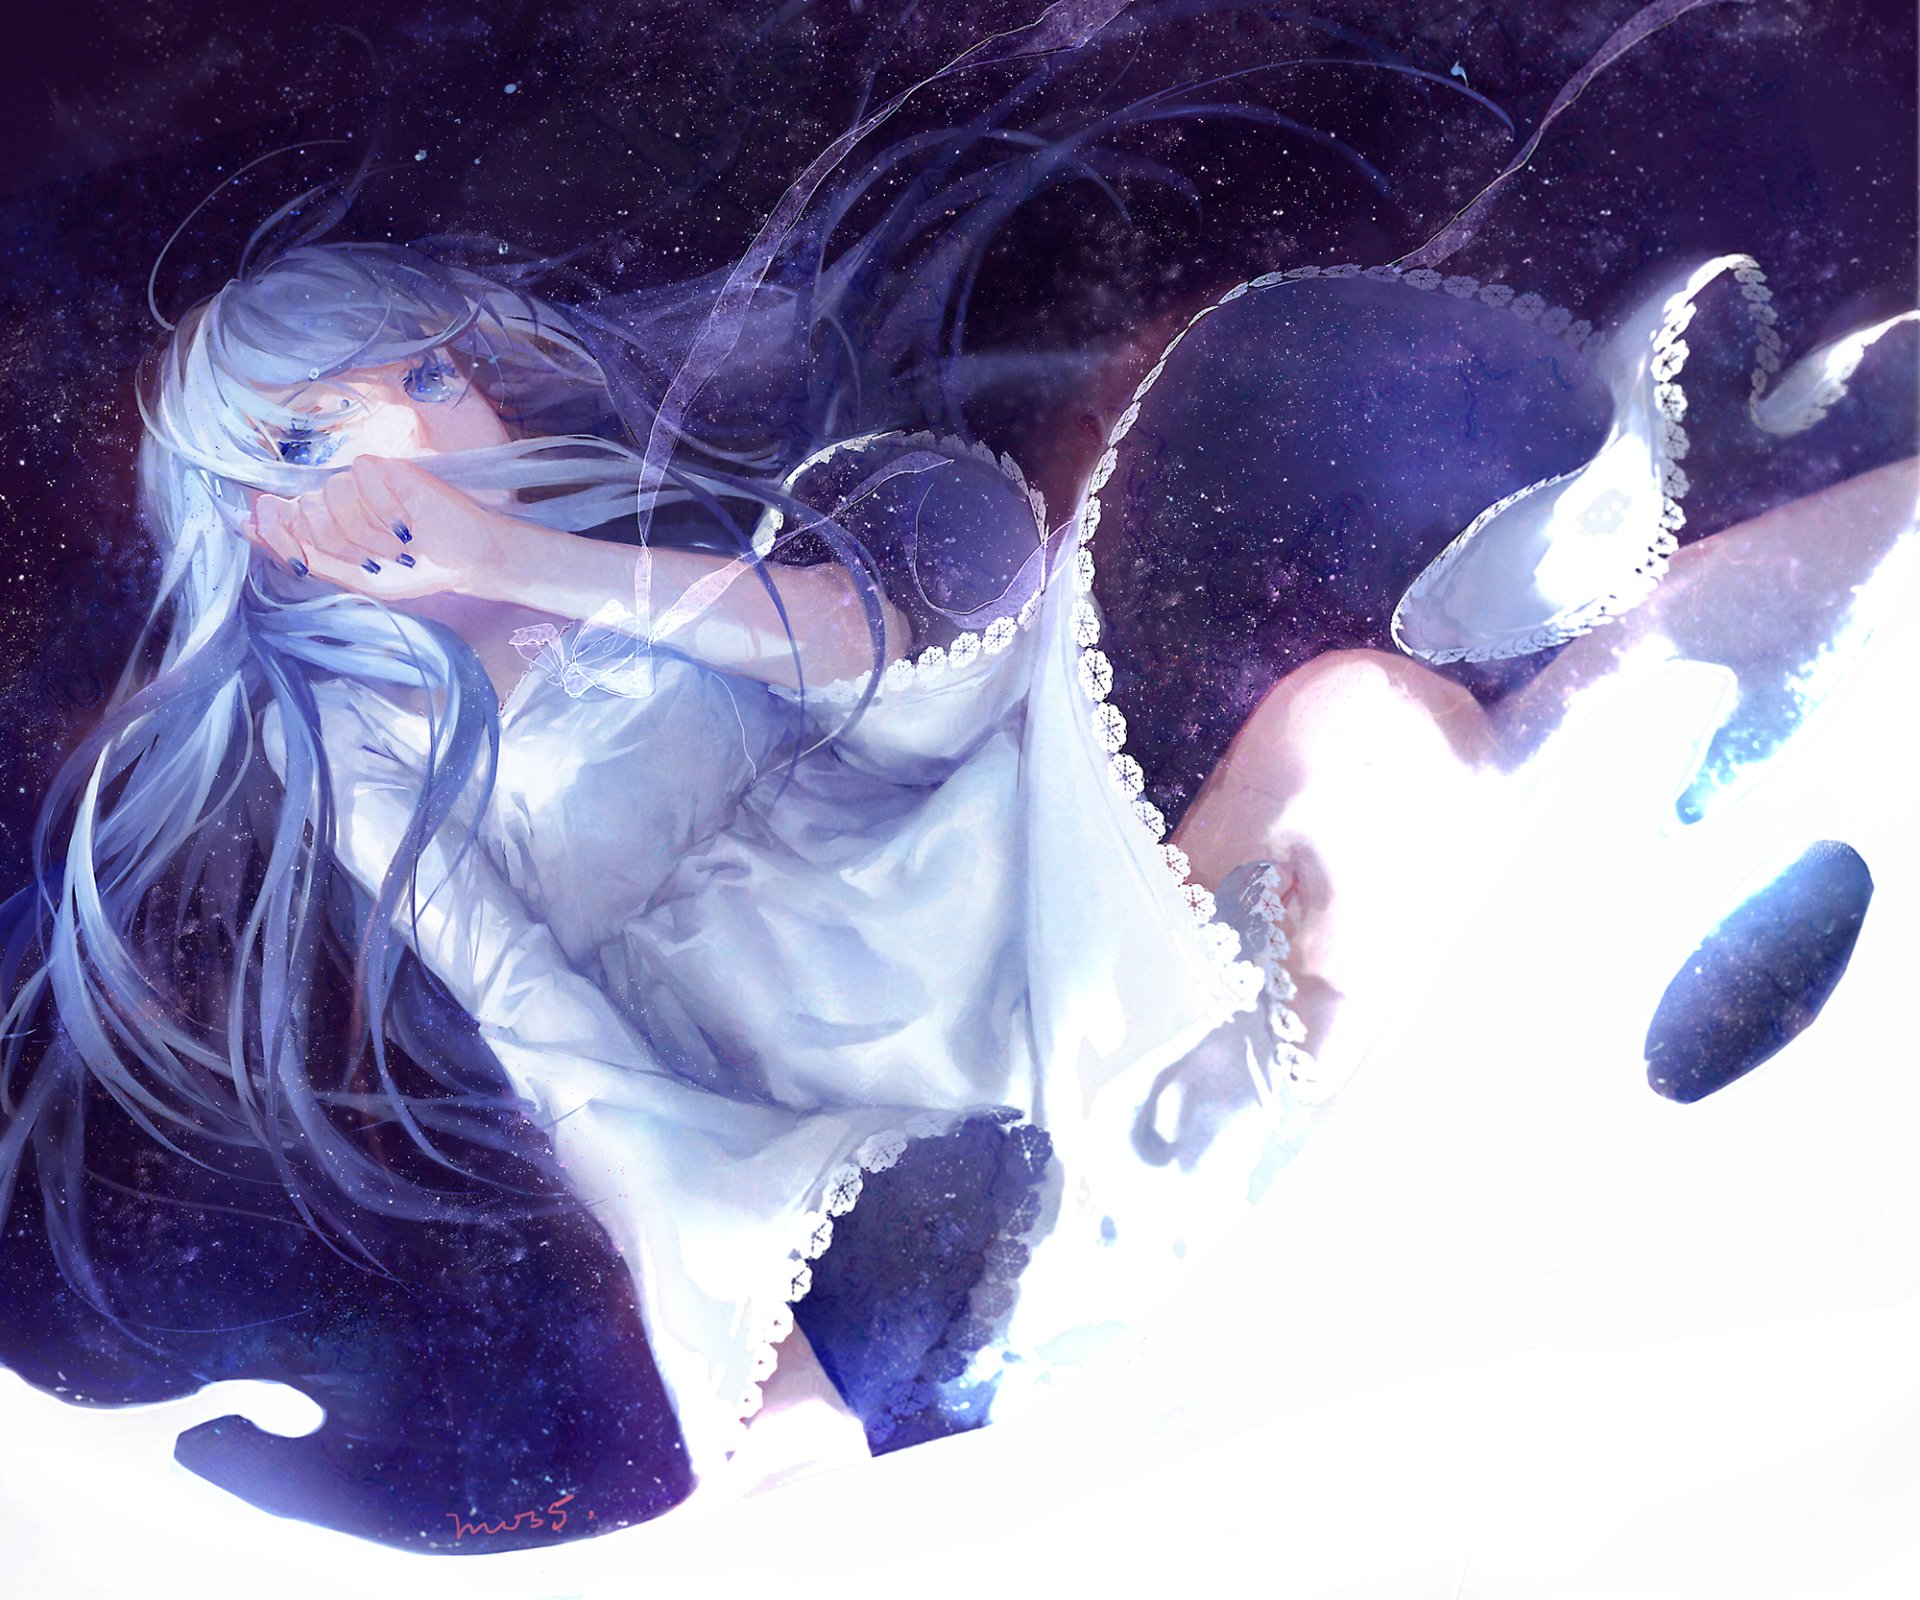 Anime - Original  Anime Original (Anime) Girl Long Hair Blue Hair Glitter Dress Blue Eyes Wallpaper